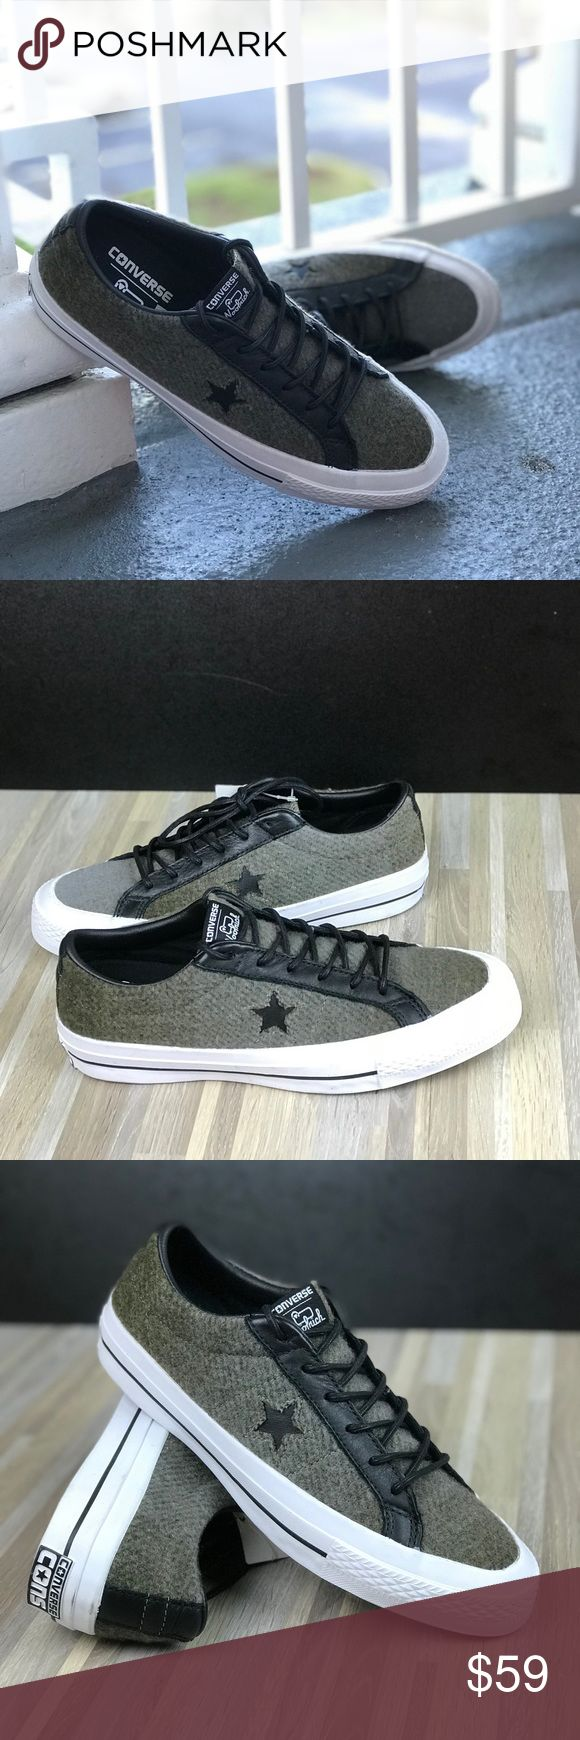 Converse&Woolrich One Star OX JUTE W AUTHENTIC Brand new with no lid box. Price is firm! No trades. The Converse x Woolrich One Star brings together two American icons with a woolen upper cast in the unmistakable One Star silhouette. Woolen fabric upper for warmth Rubber outsole for traction Converse Shoes Sneakers